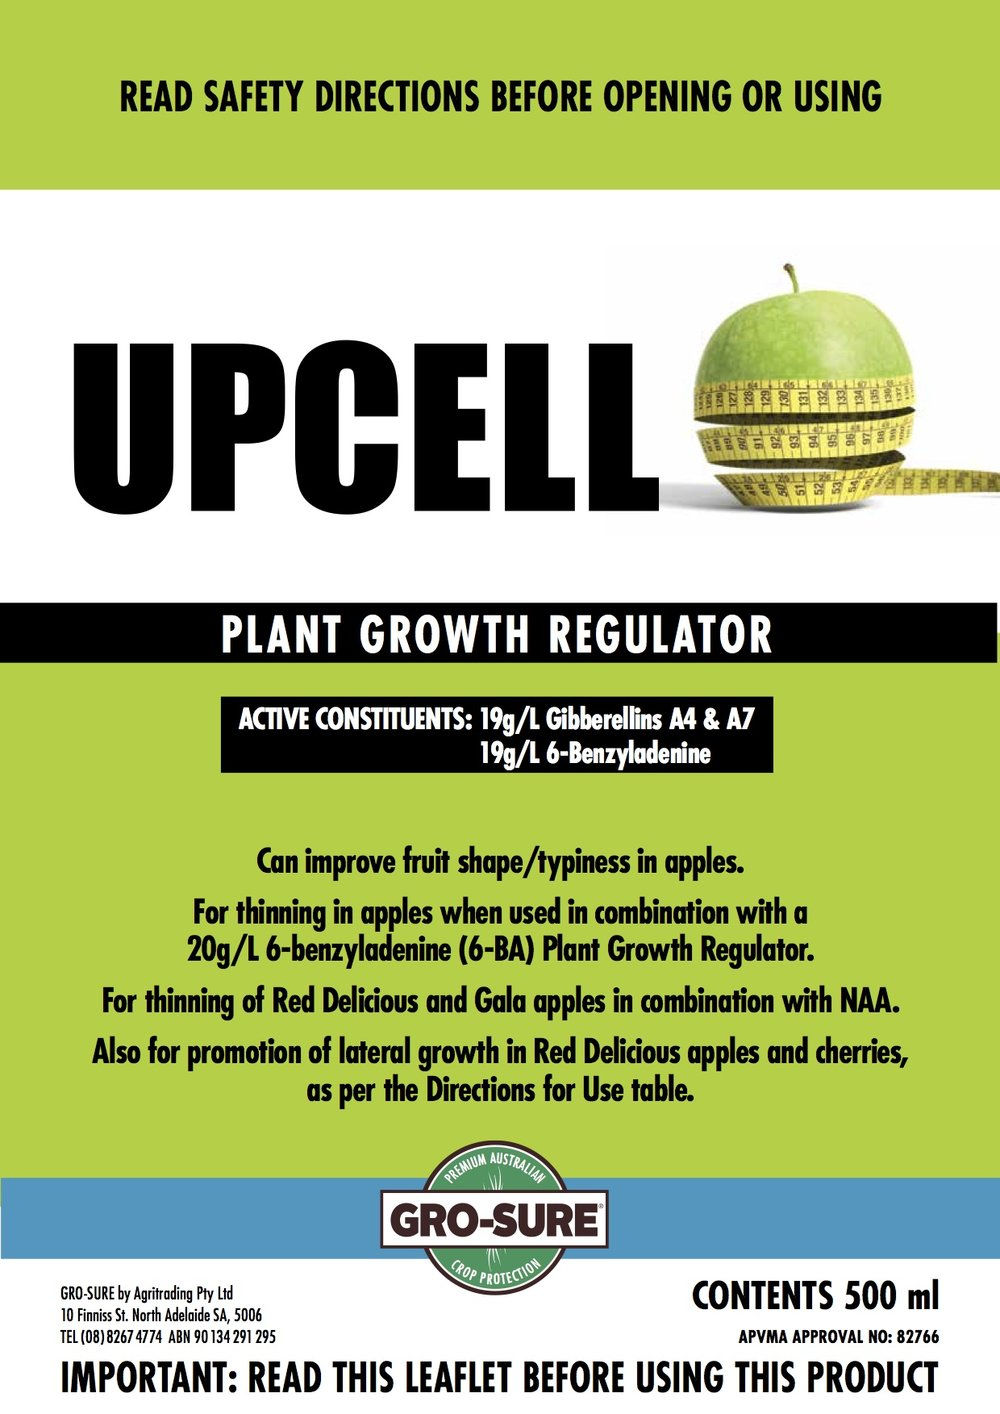 UpCell Web Label copy.jpg